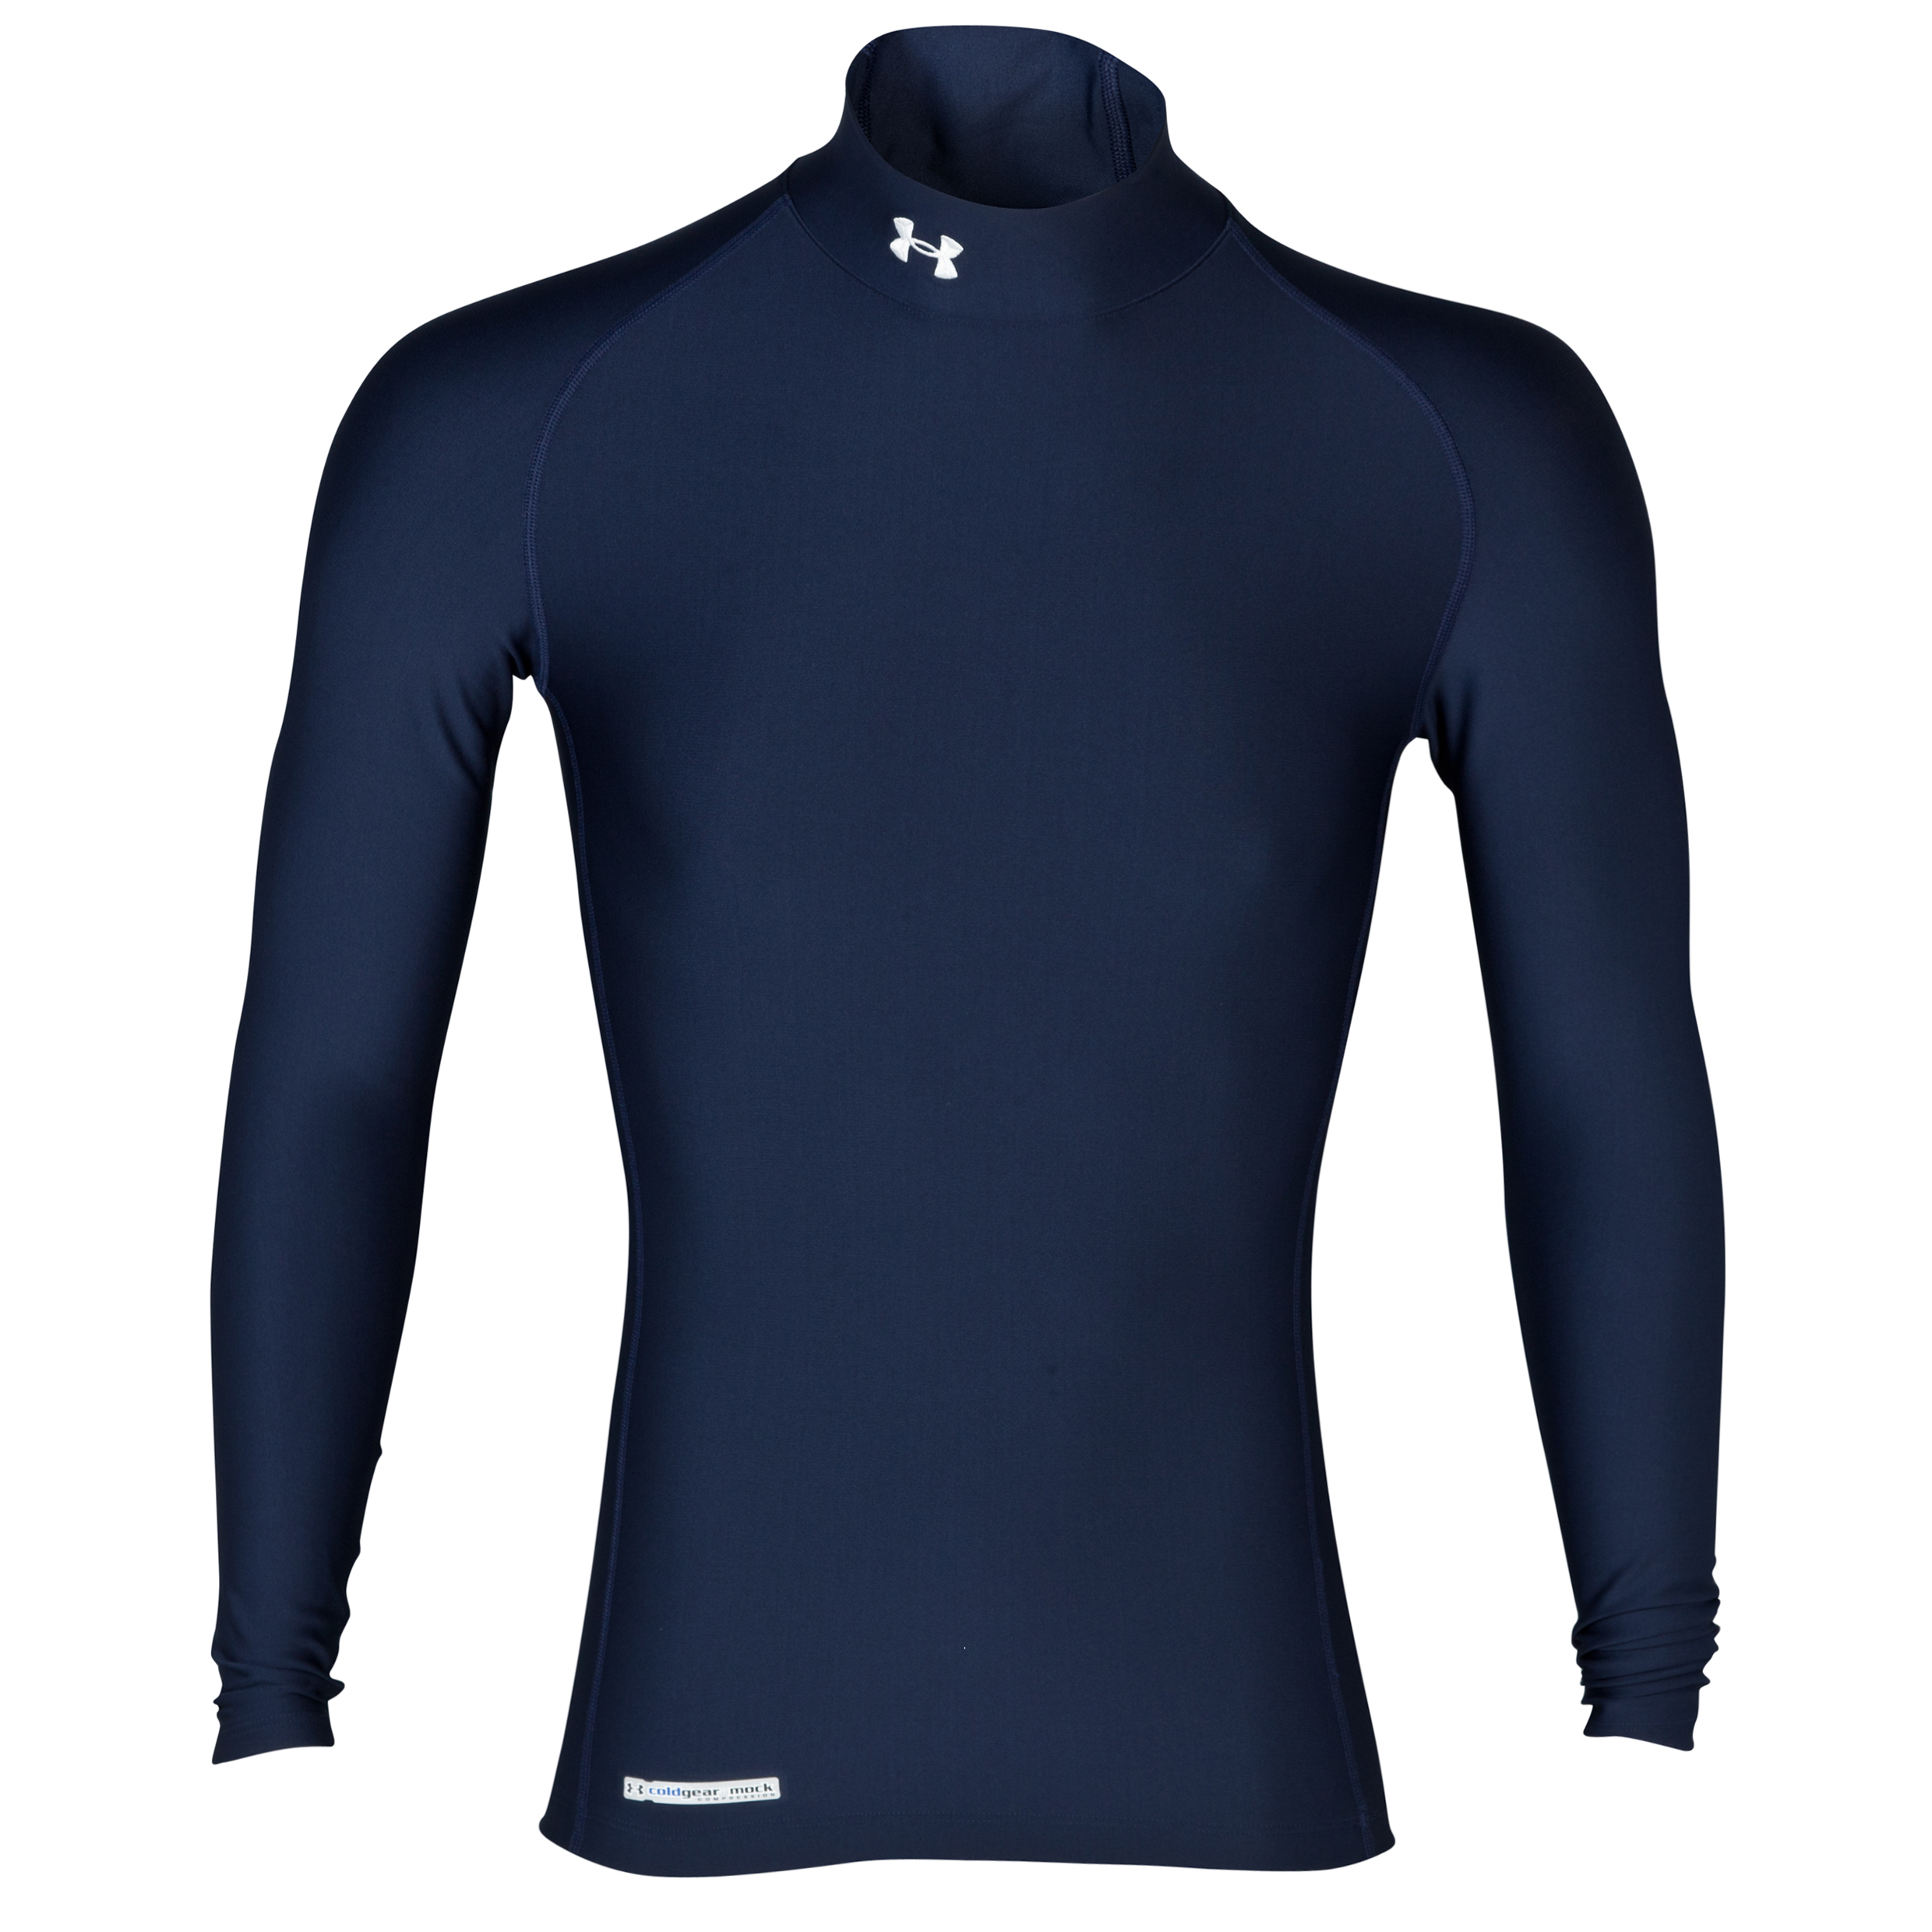 Under Armour Evo Coldgear mock Base Layer Top - Long Sleeve Navy